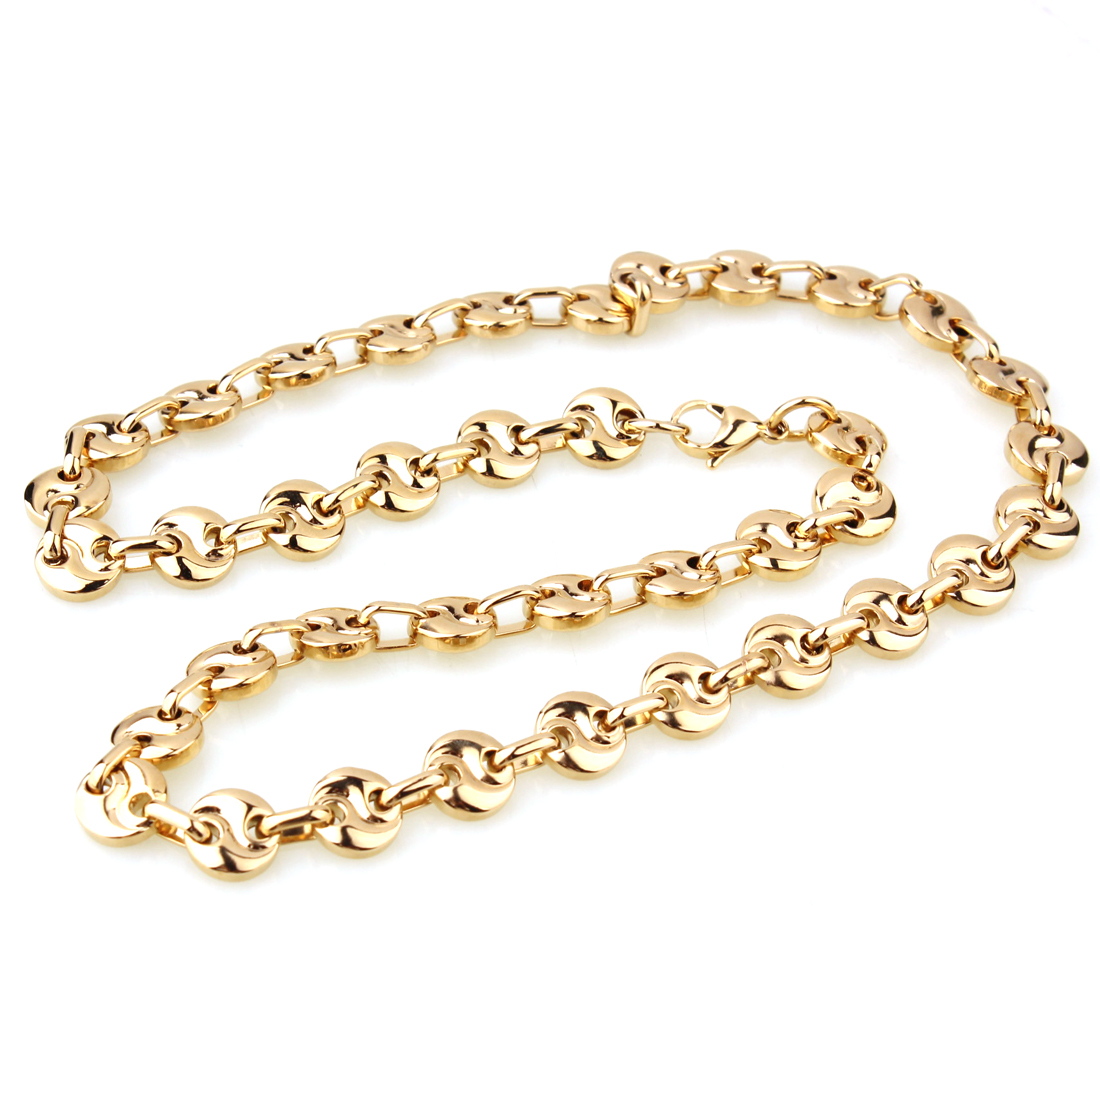 Fashion Mens Link Chain Top Gold Stainless Steel 10mm Mens Coffee Bean Chain Necklace Bracelet Mens Womens Necklace 7 40 inch in Chain Necklaces from Jewelry Accessories